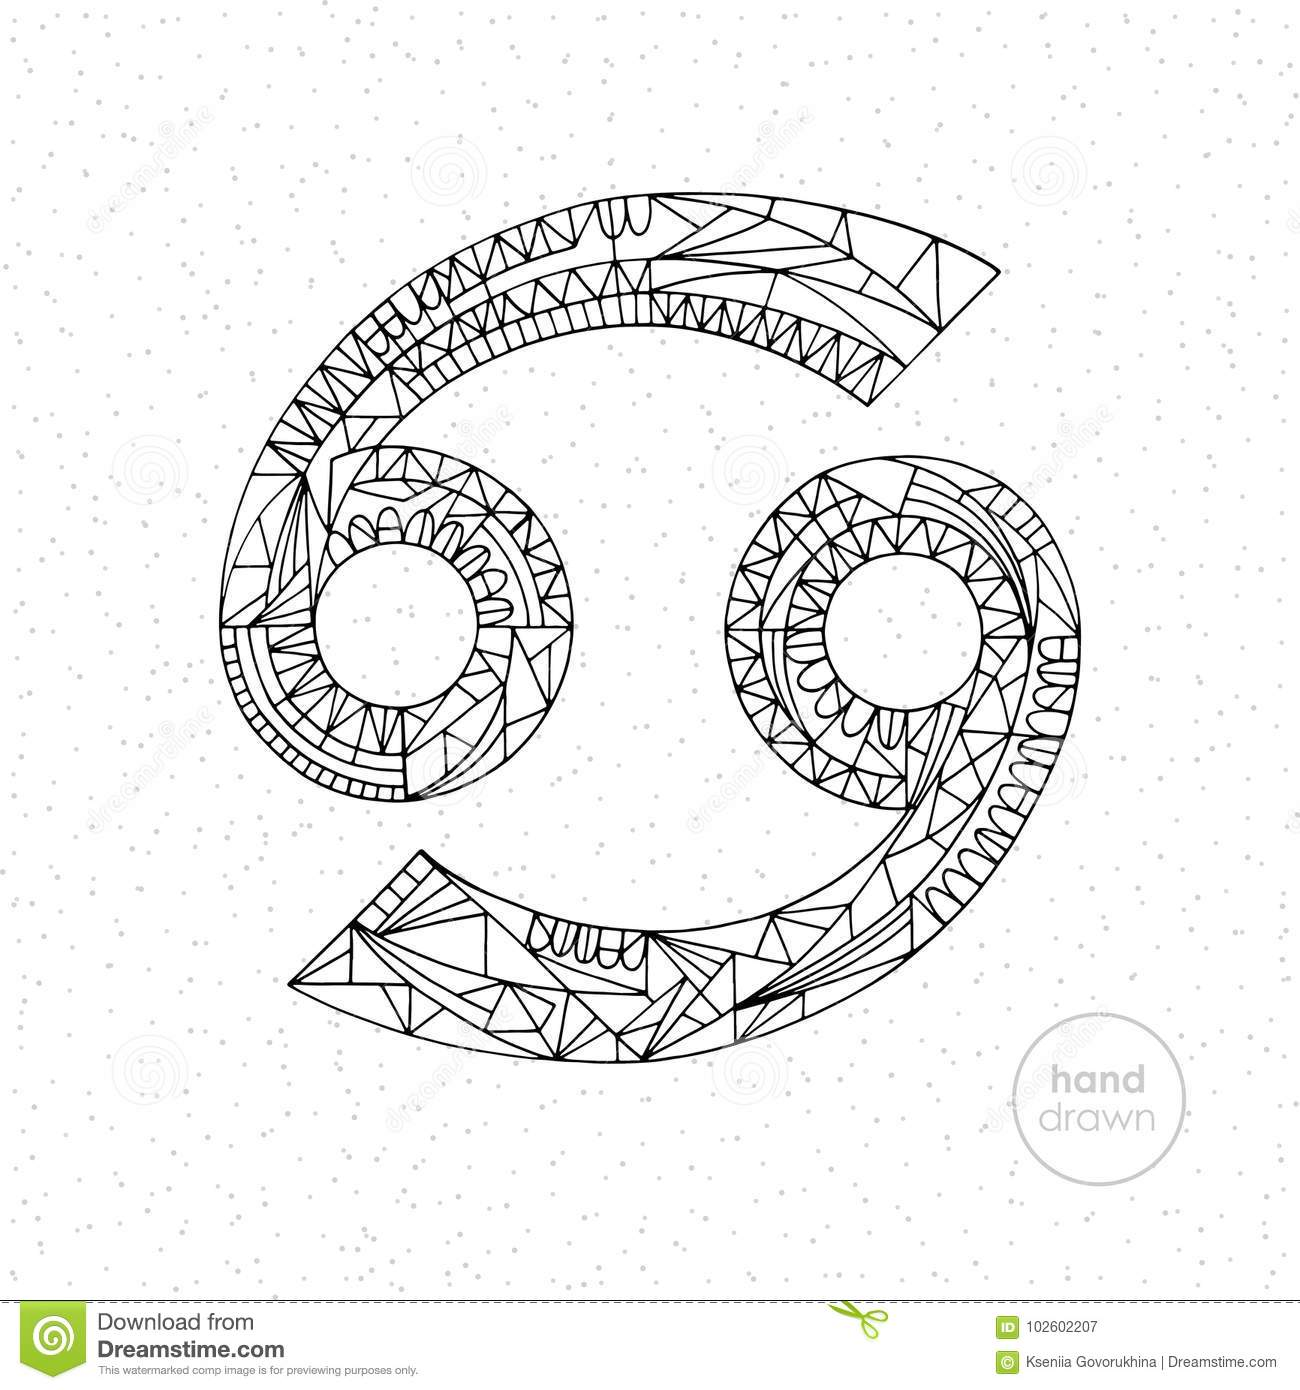 Cancer Zodiac Sign Vector Hand Drawn Horoscope Illustration Astrological Coloring Page Stock Vector Illustration Of Design Lunar 102602207